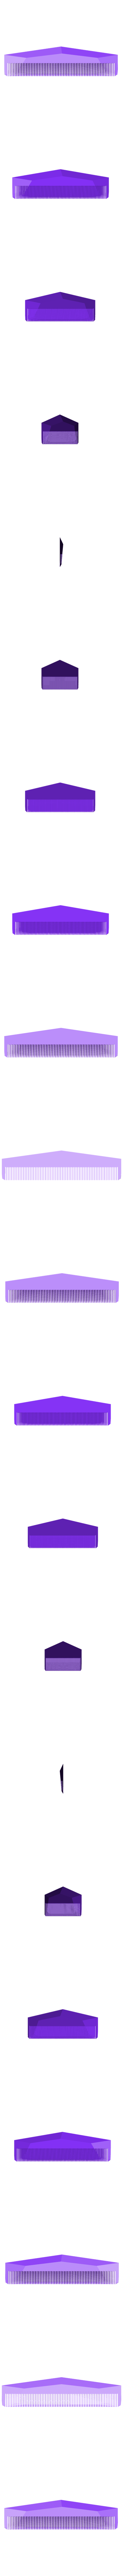 customized_hair_comb_no4.stl Download free STL file Customizable Comb • 3D printable model, MightyNozzle